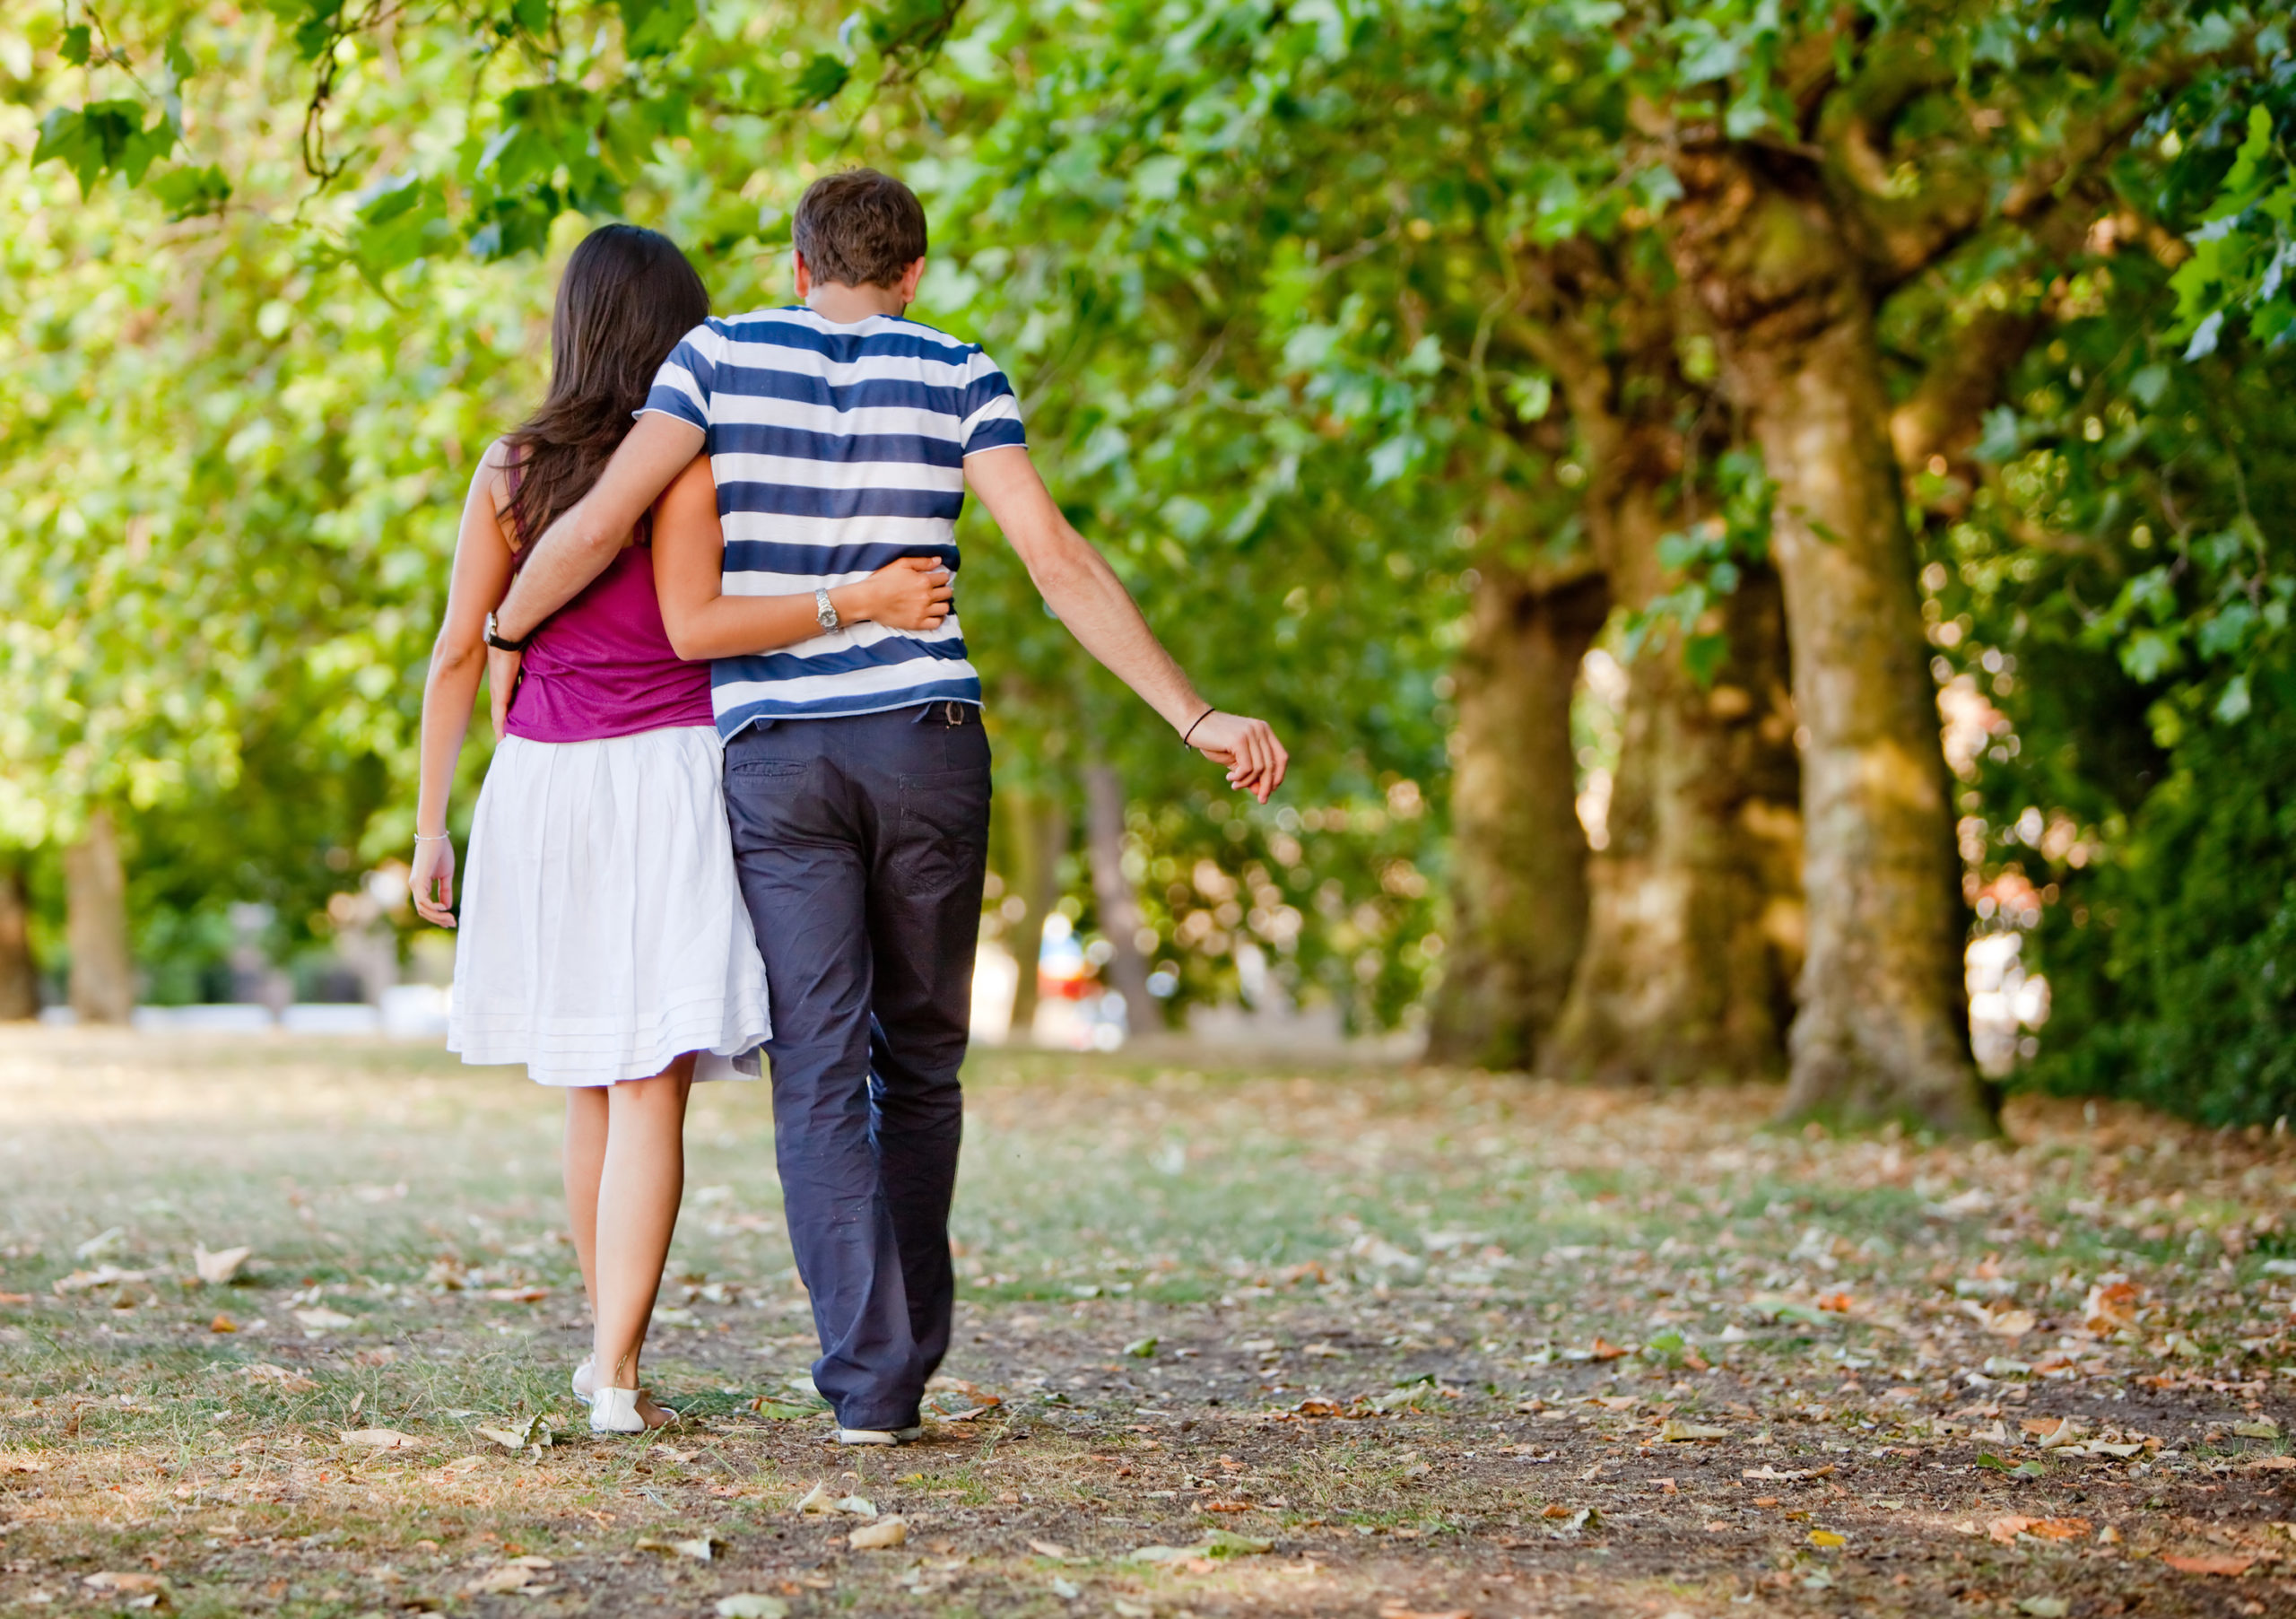 Beautiful,Loving,Couple,Going,For,A,Walk,Outdoors